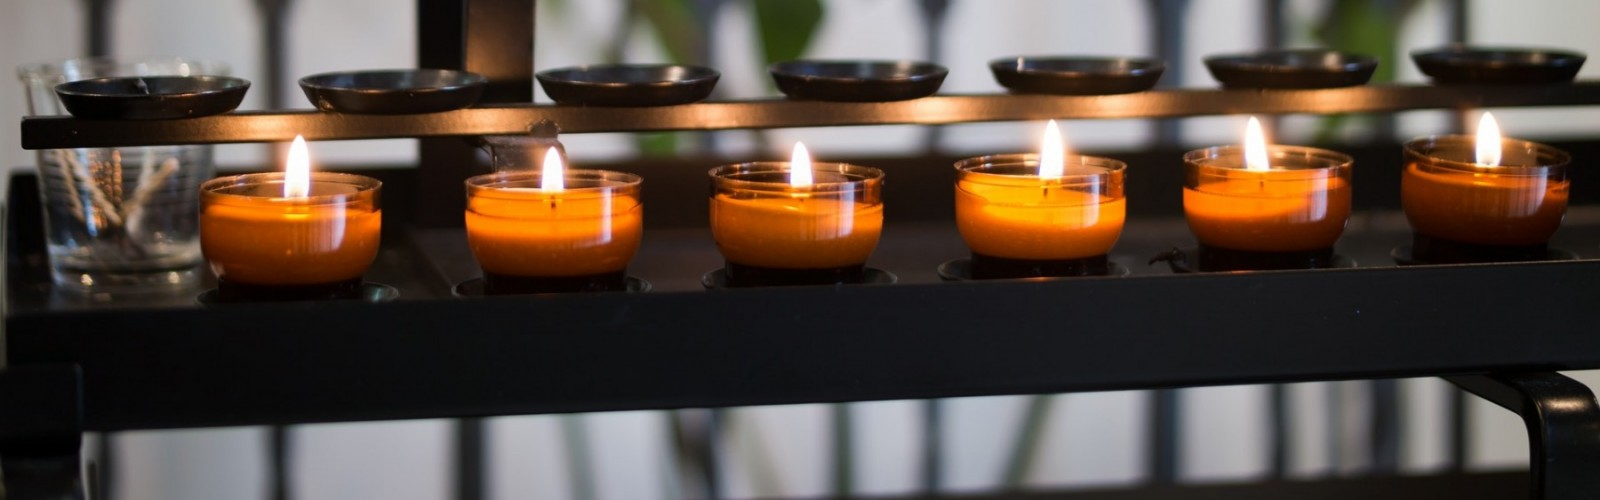 Tealights on metal shelf - Unity in Frederick